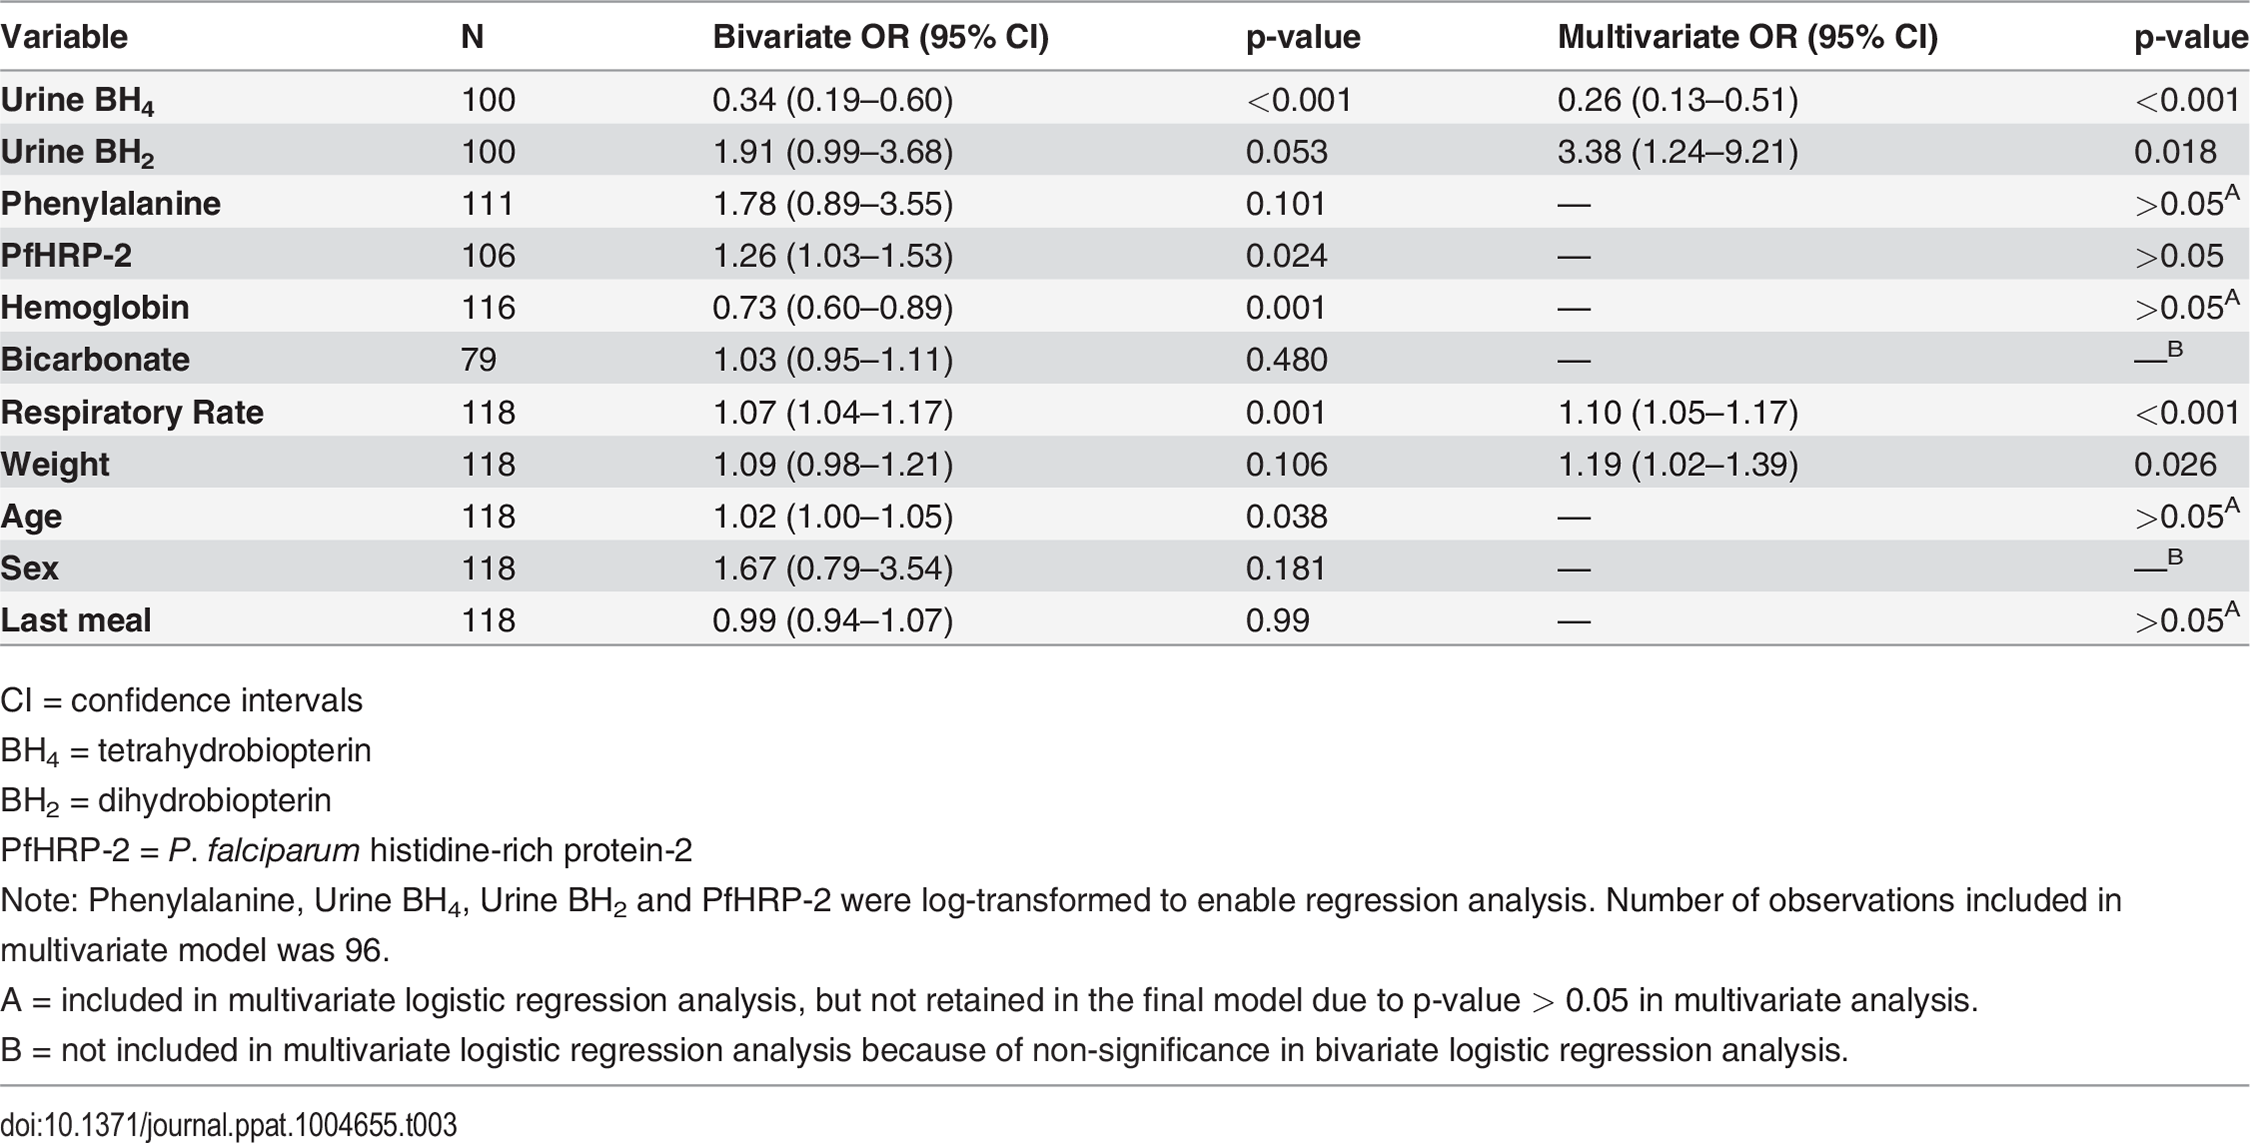 Bivariate and multivariate logistic regression analysis of factors associated with increased odds of cerebral malaria.